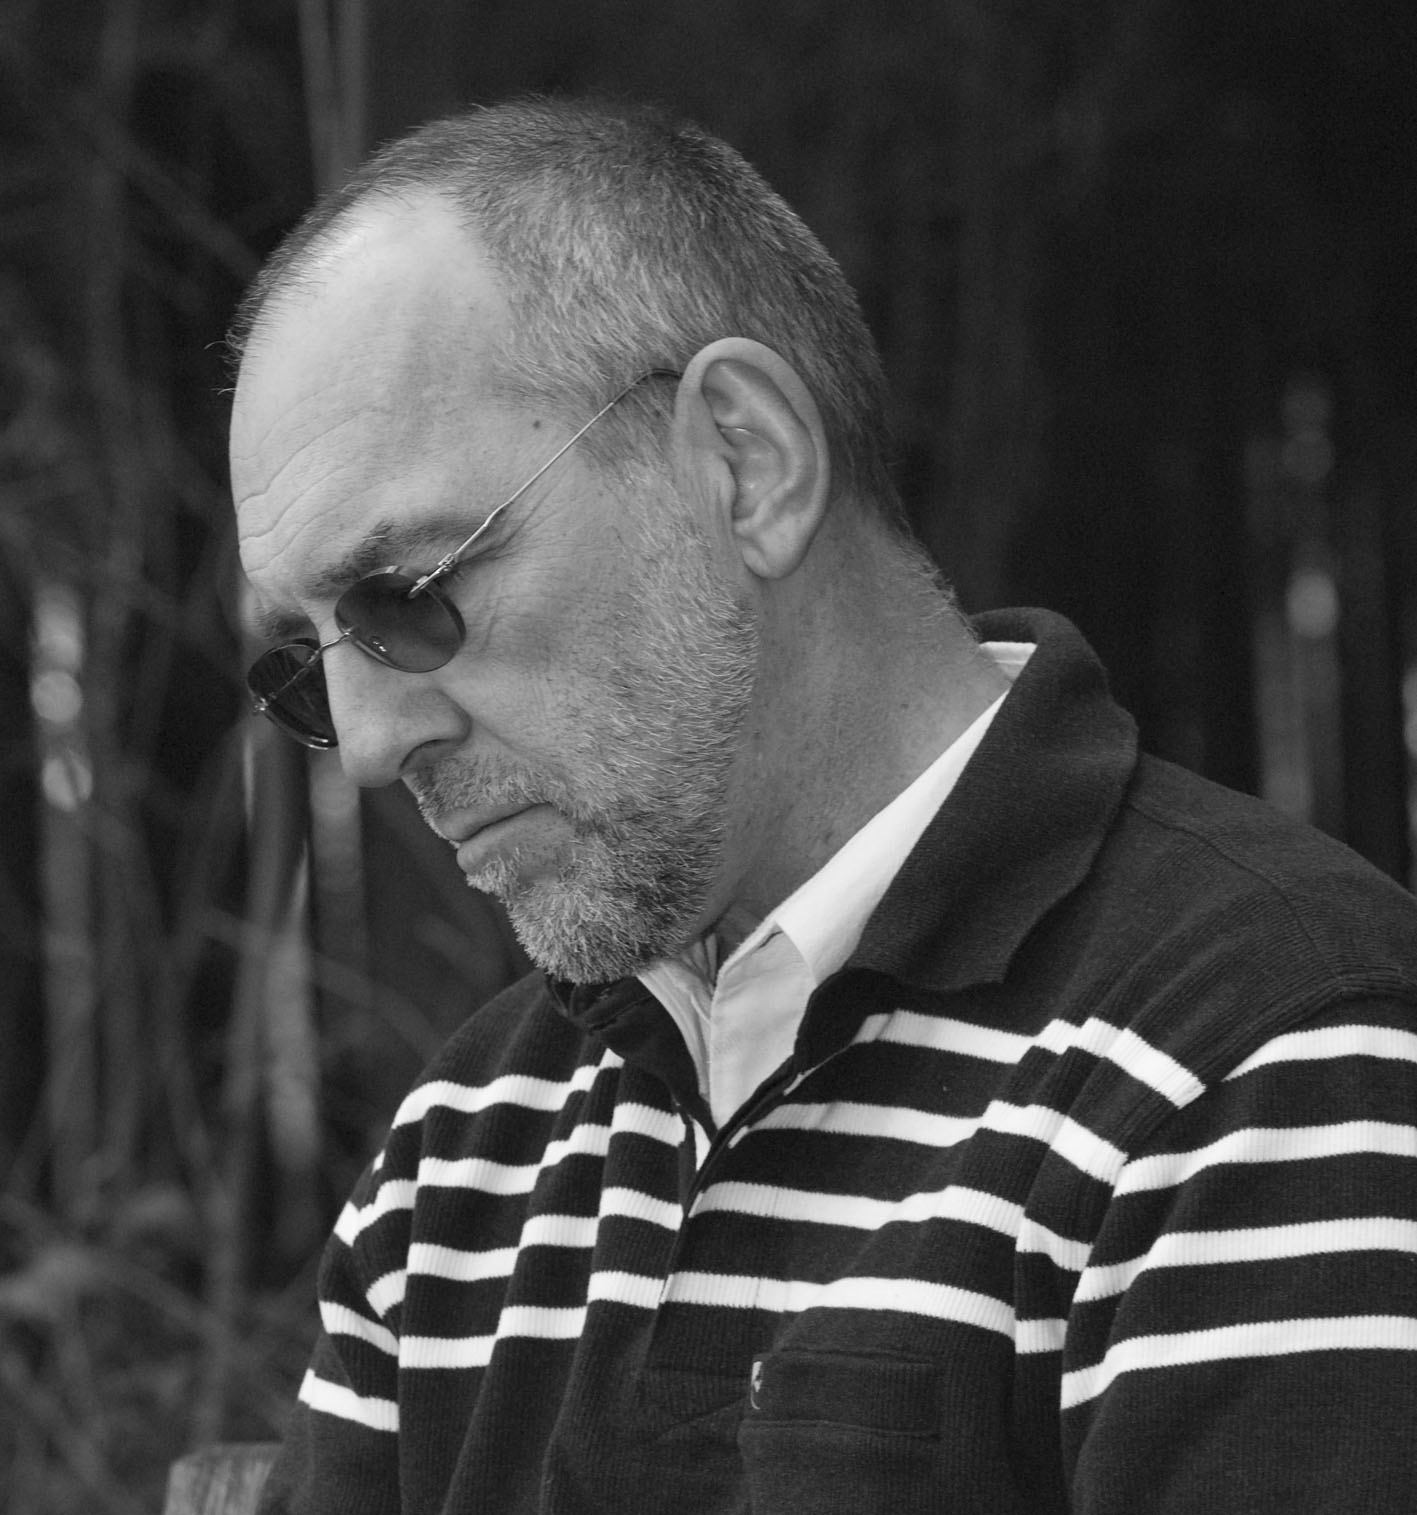 Pierre Christen, luxembourgish composer. Born in 1955 in Luxembourg. Studied at the Conservatory of Metz, Liège and University of Sarrebruck. Lives in Luxembourg.